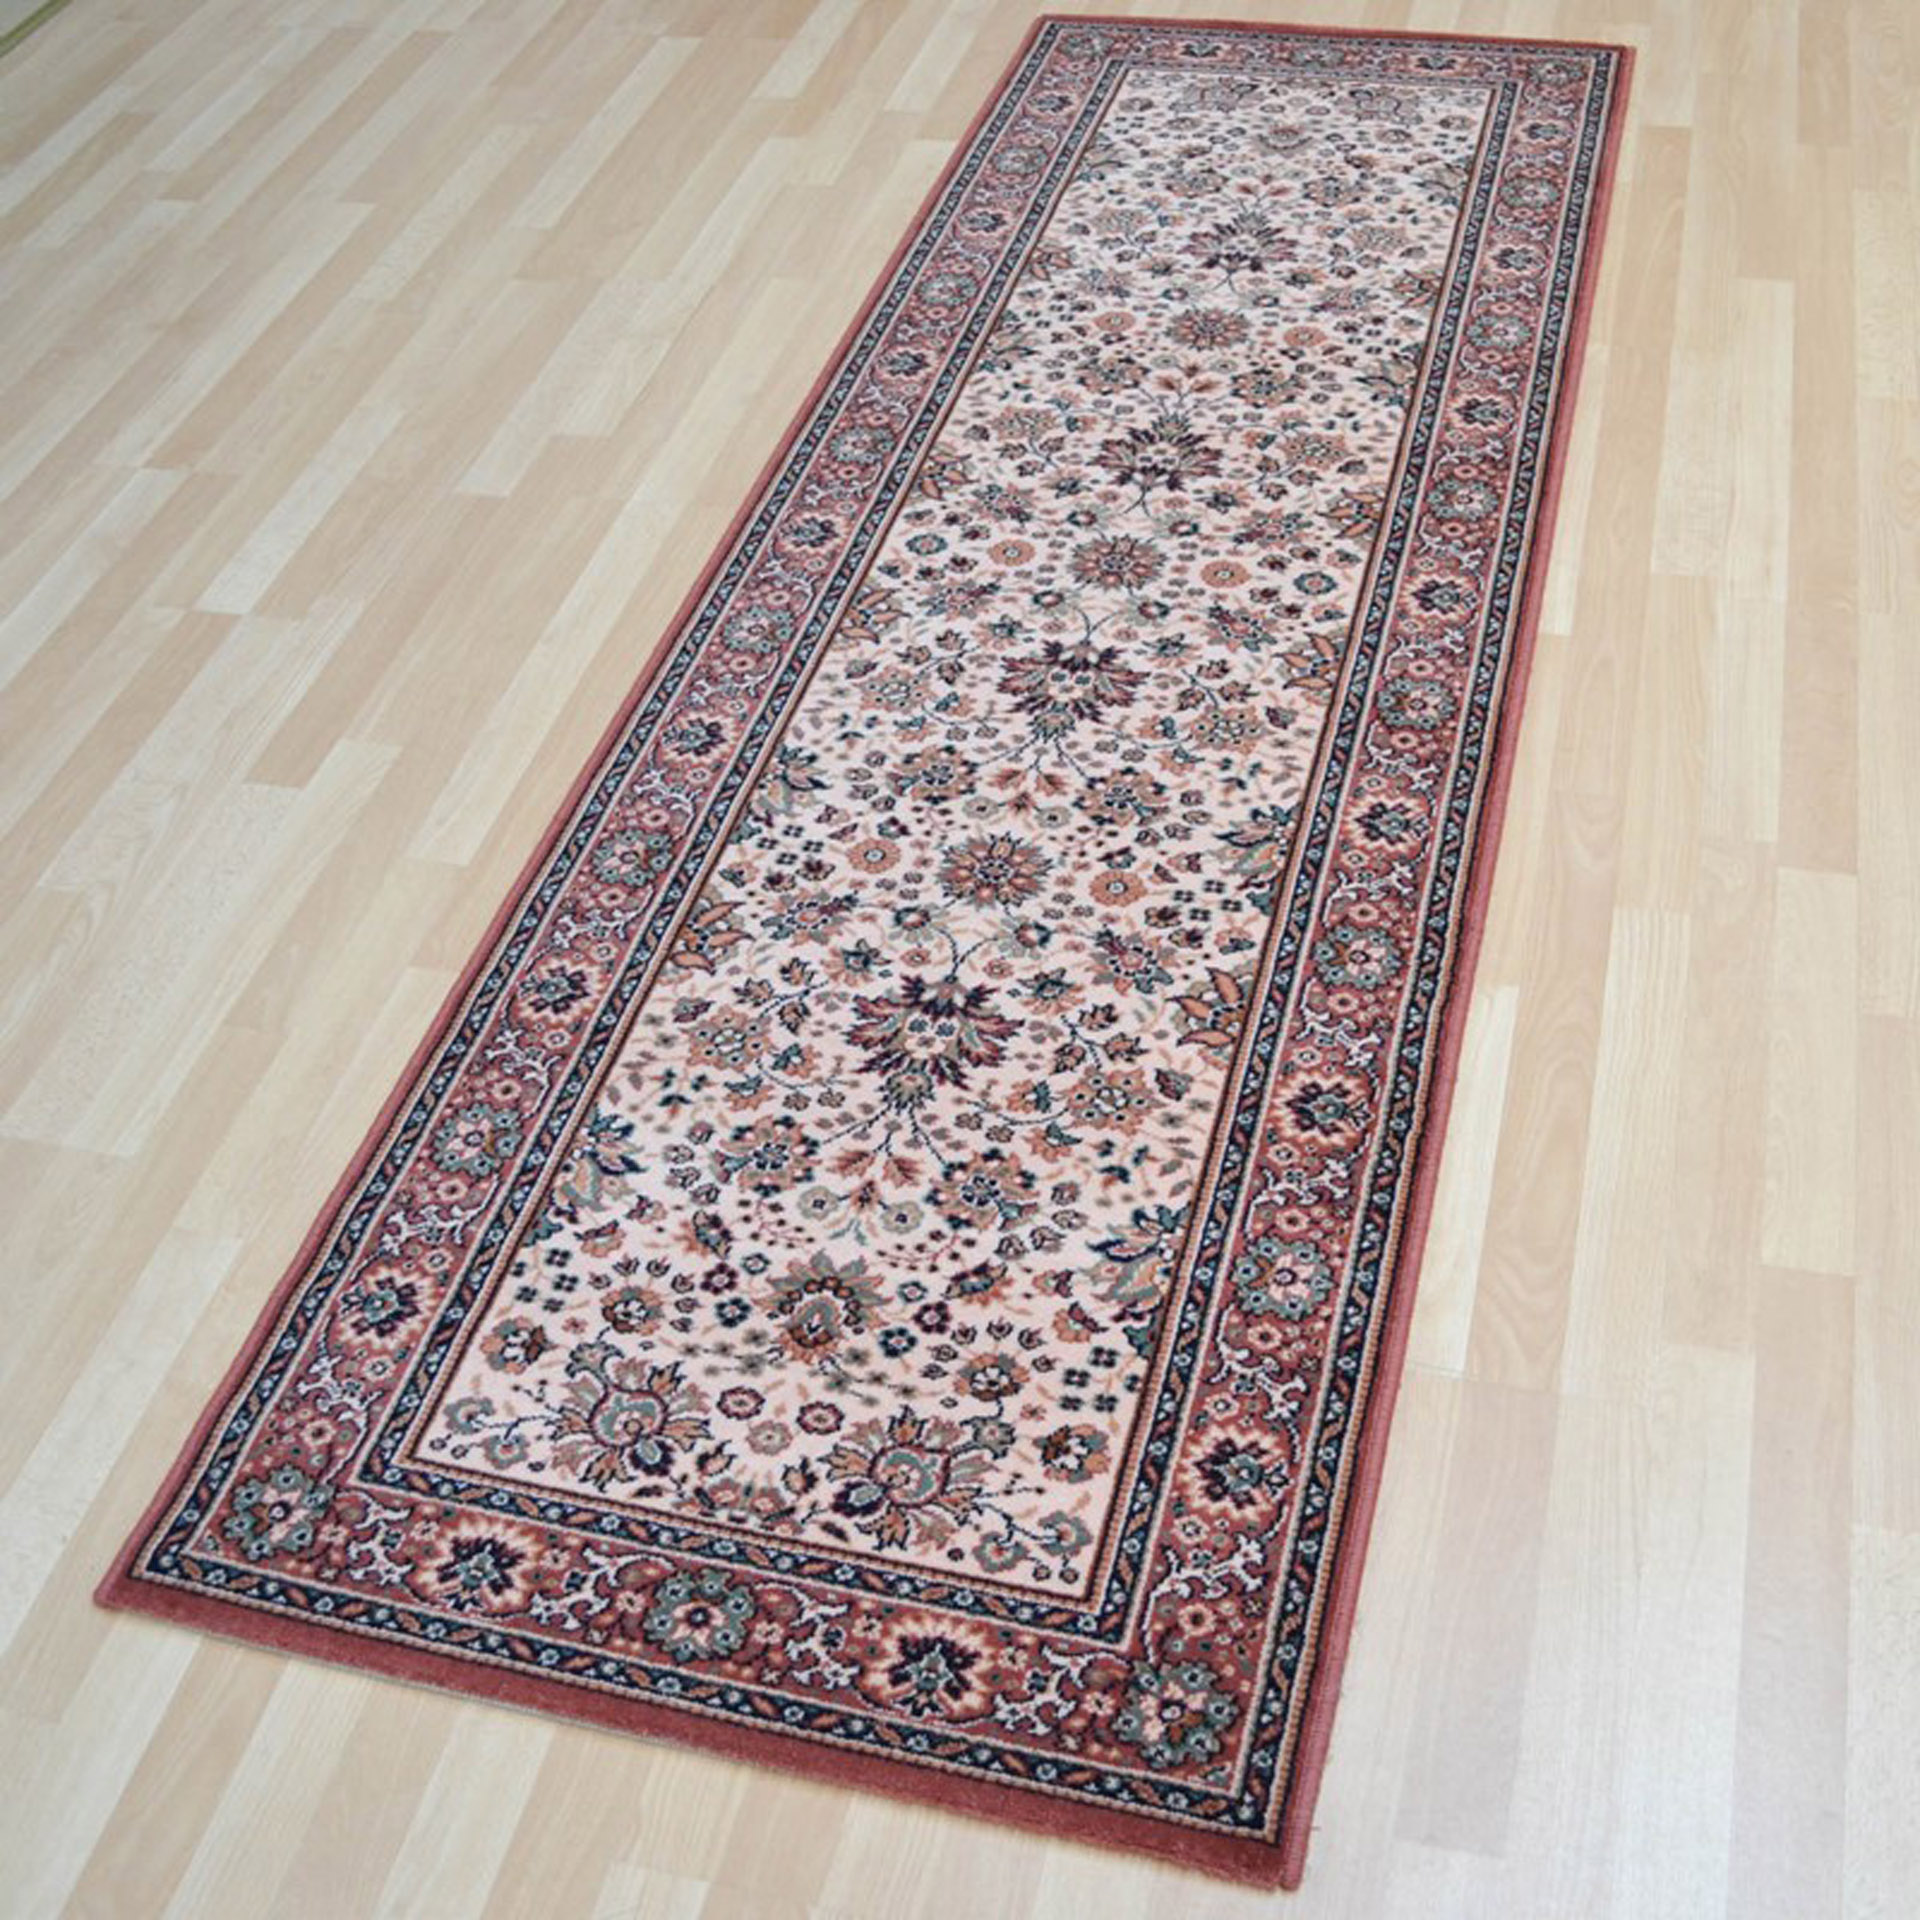 Lano Royal Runner 1561-515 Rug